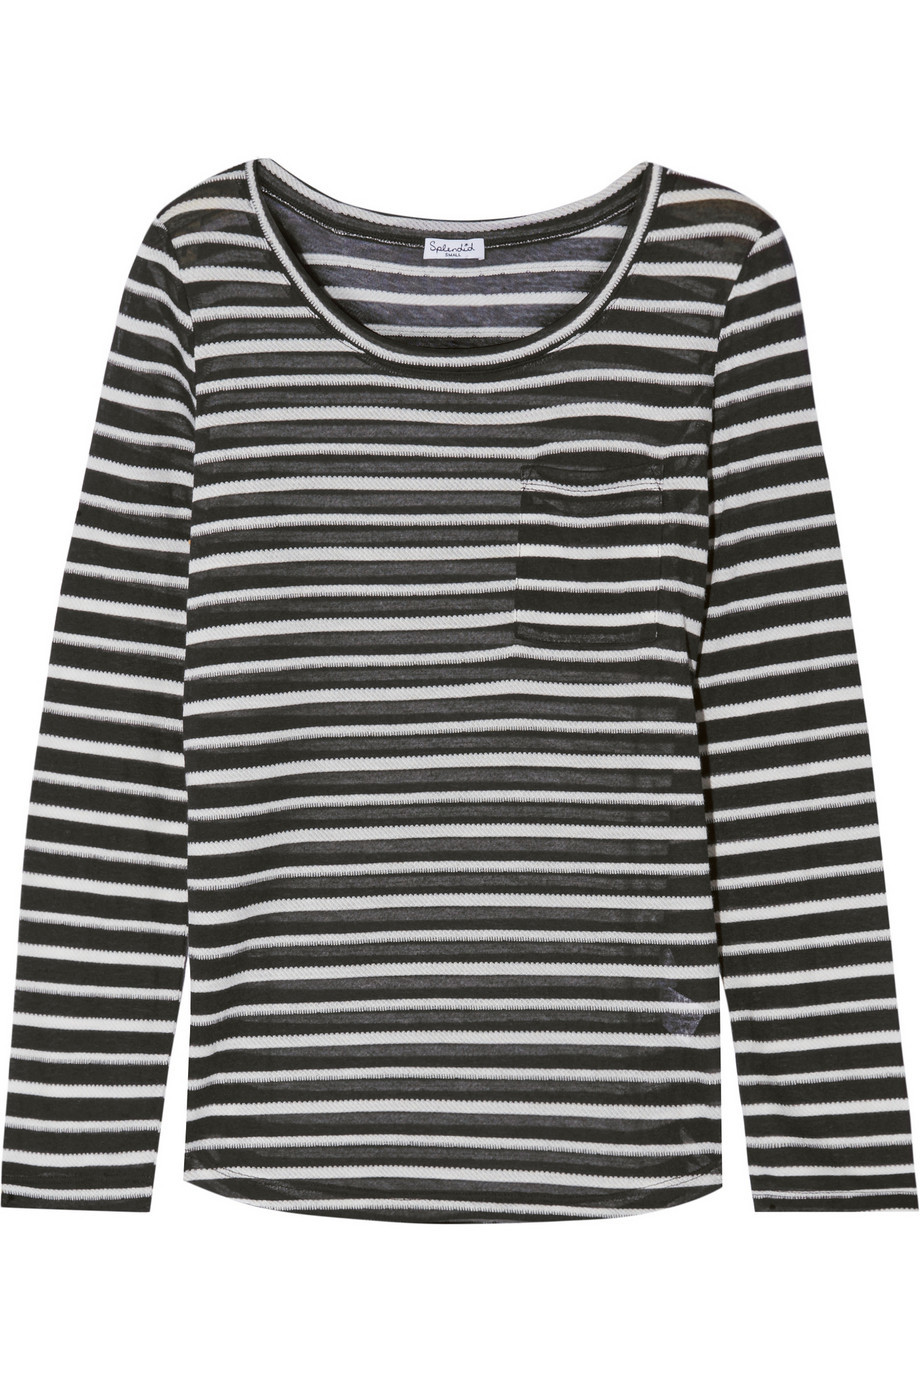 Striped Stretch Knit Top Black - neckline: round neck; pattern: horizontal stripes; secondary colour: light grey; predominant colour: black; occasions: casual, creative work; length: standard; style: top; fibres: polyester/polyamide - mix; fit: body skimming; sleeve length: long sleeve; sleeve style: standard; pattern type: knitted - fine stitch; pattern size: standard; texture group: jersey - stretchy/drapey; season: s/s 2016; wardrobe: basic